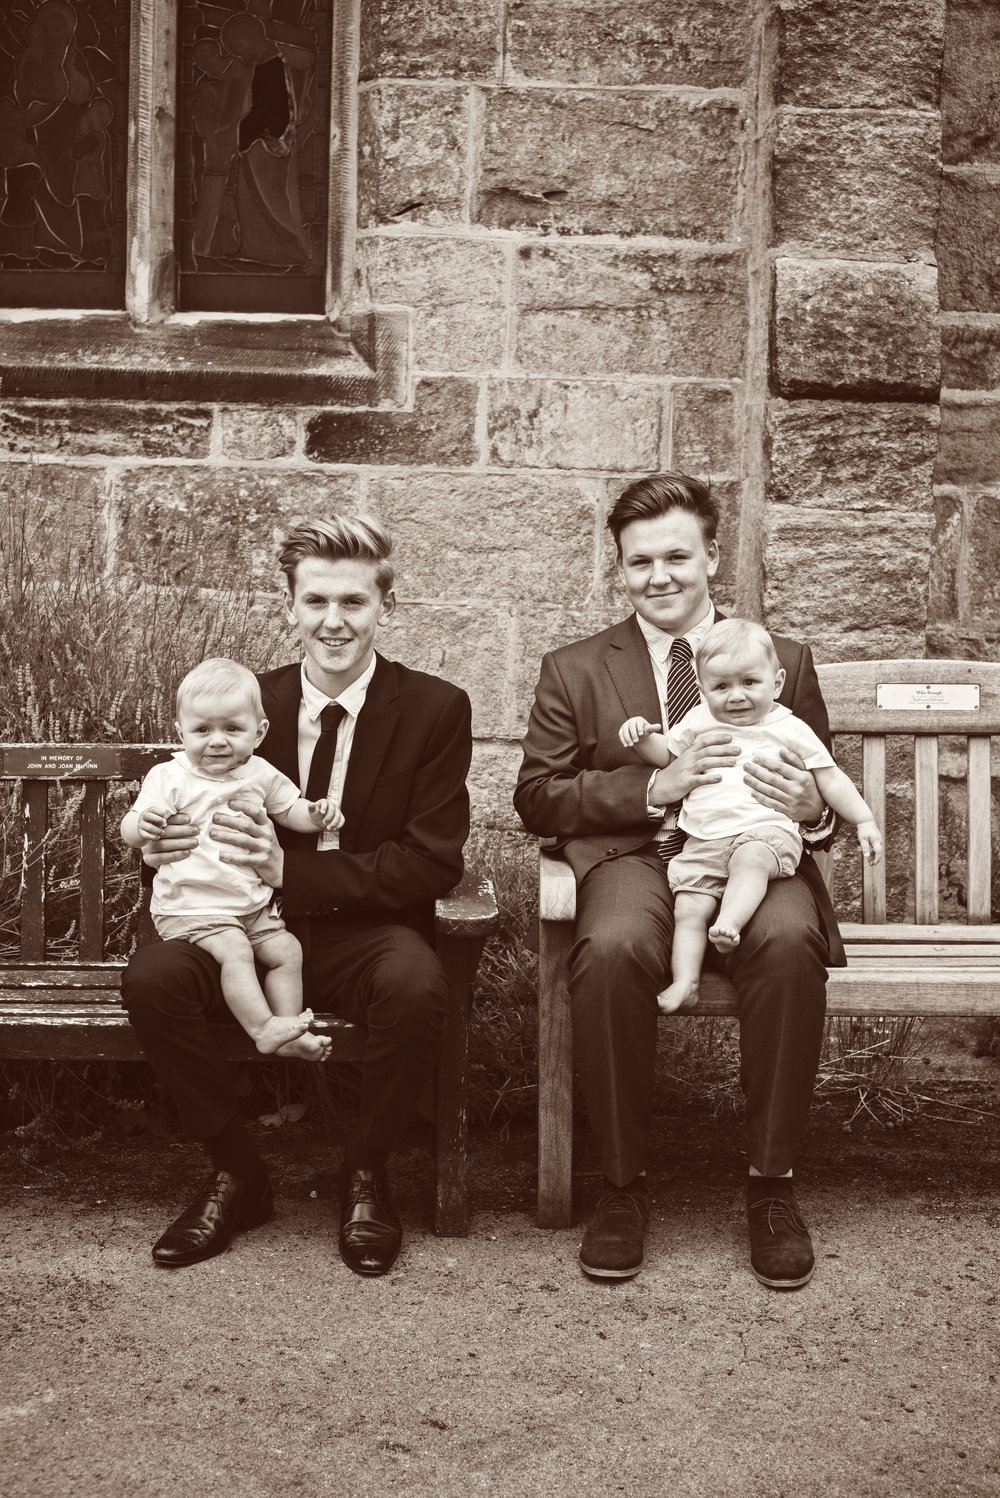 Two out of the three sets of twins present on the day of the Christening. Brothers all four, separated by years, but together and looking handsome for photos to commemorate H & W's special day.